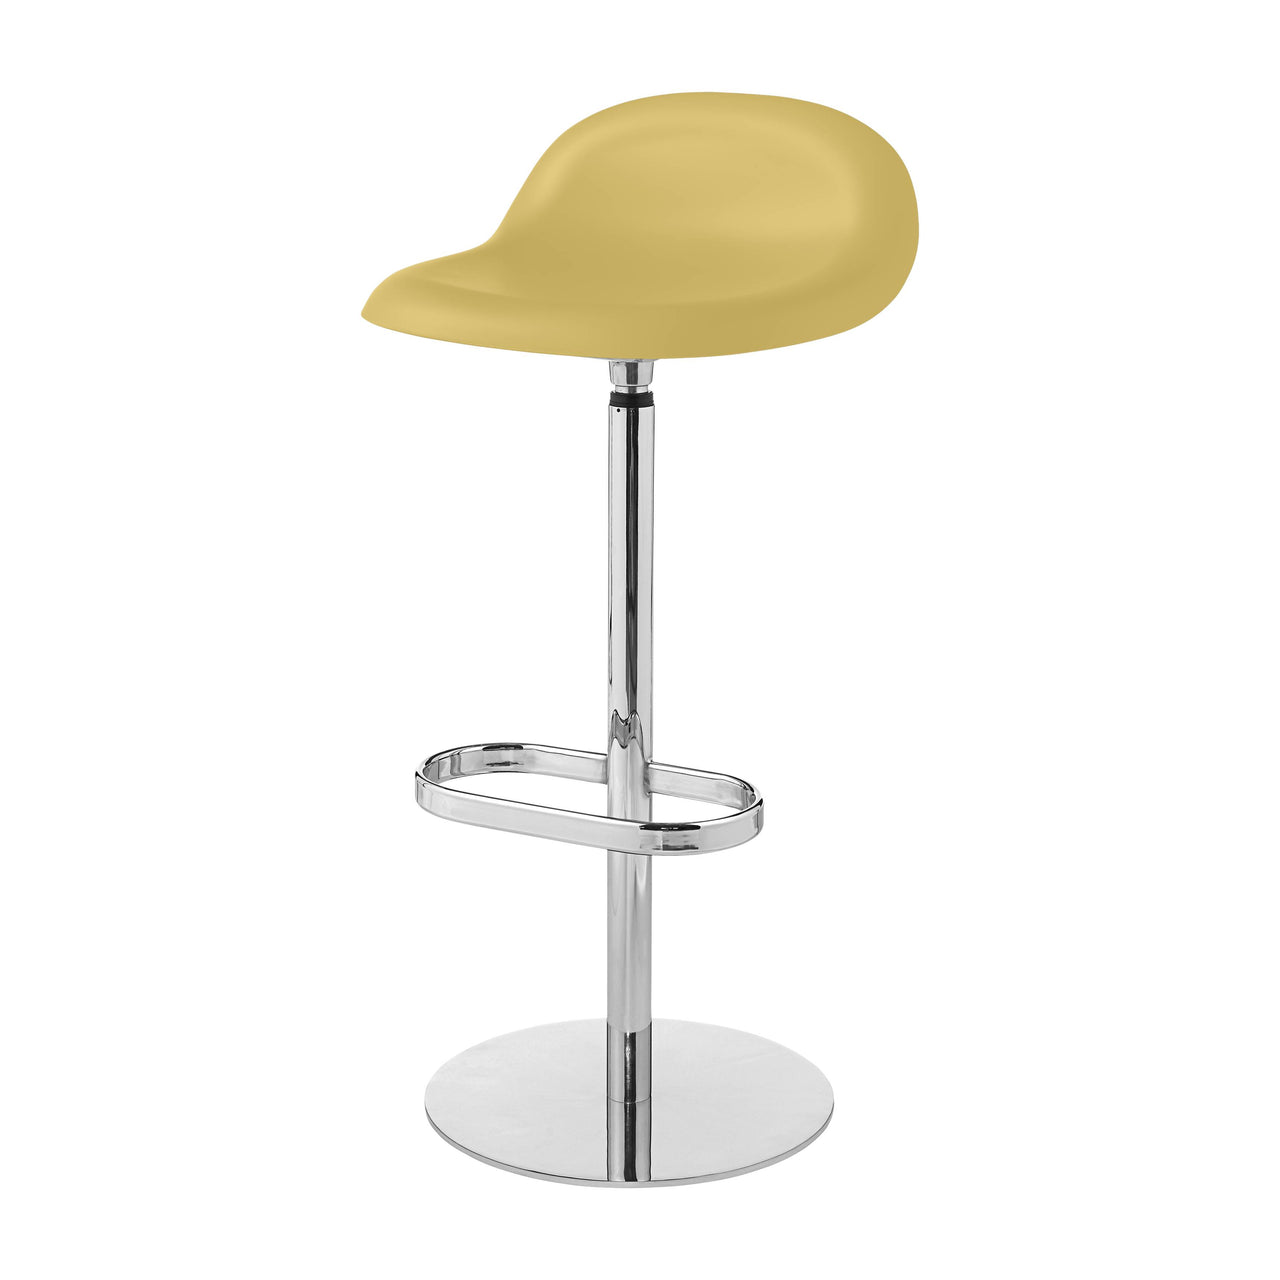 3D Bar Stool: Swivel Base + Venetian Gold